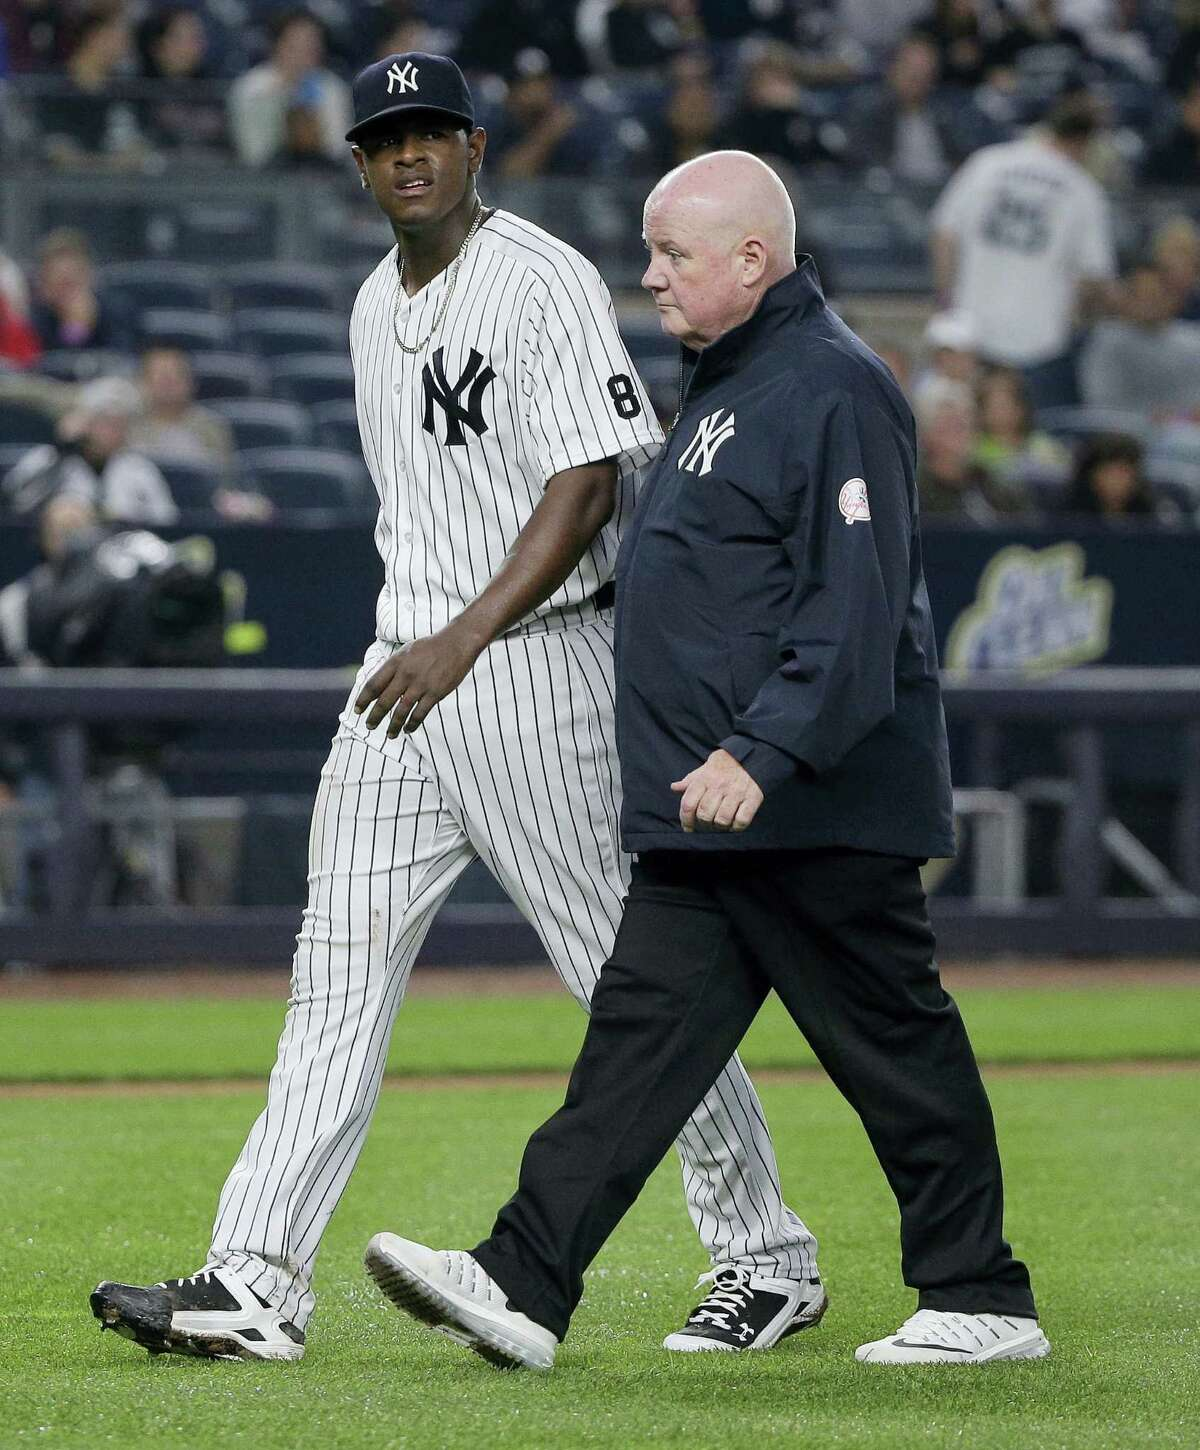 Yankees pitcher Luis Severino, left, walks off the field with head trainer Steve Donohue after giving up a two-run home run against the White Sox on Friday.